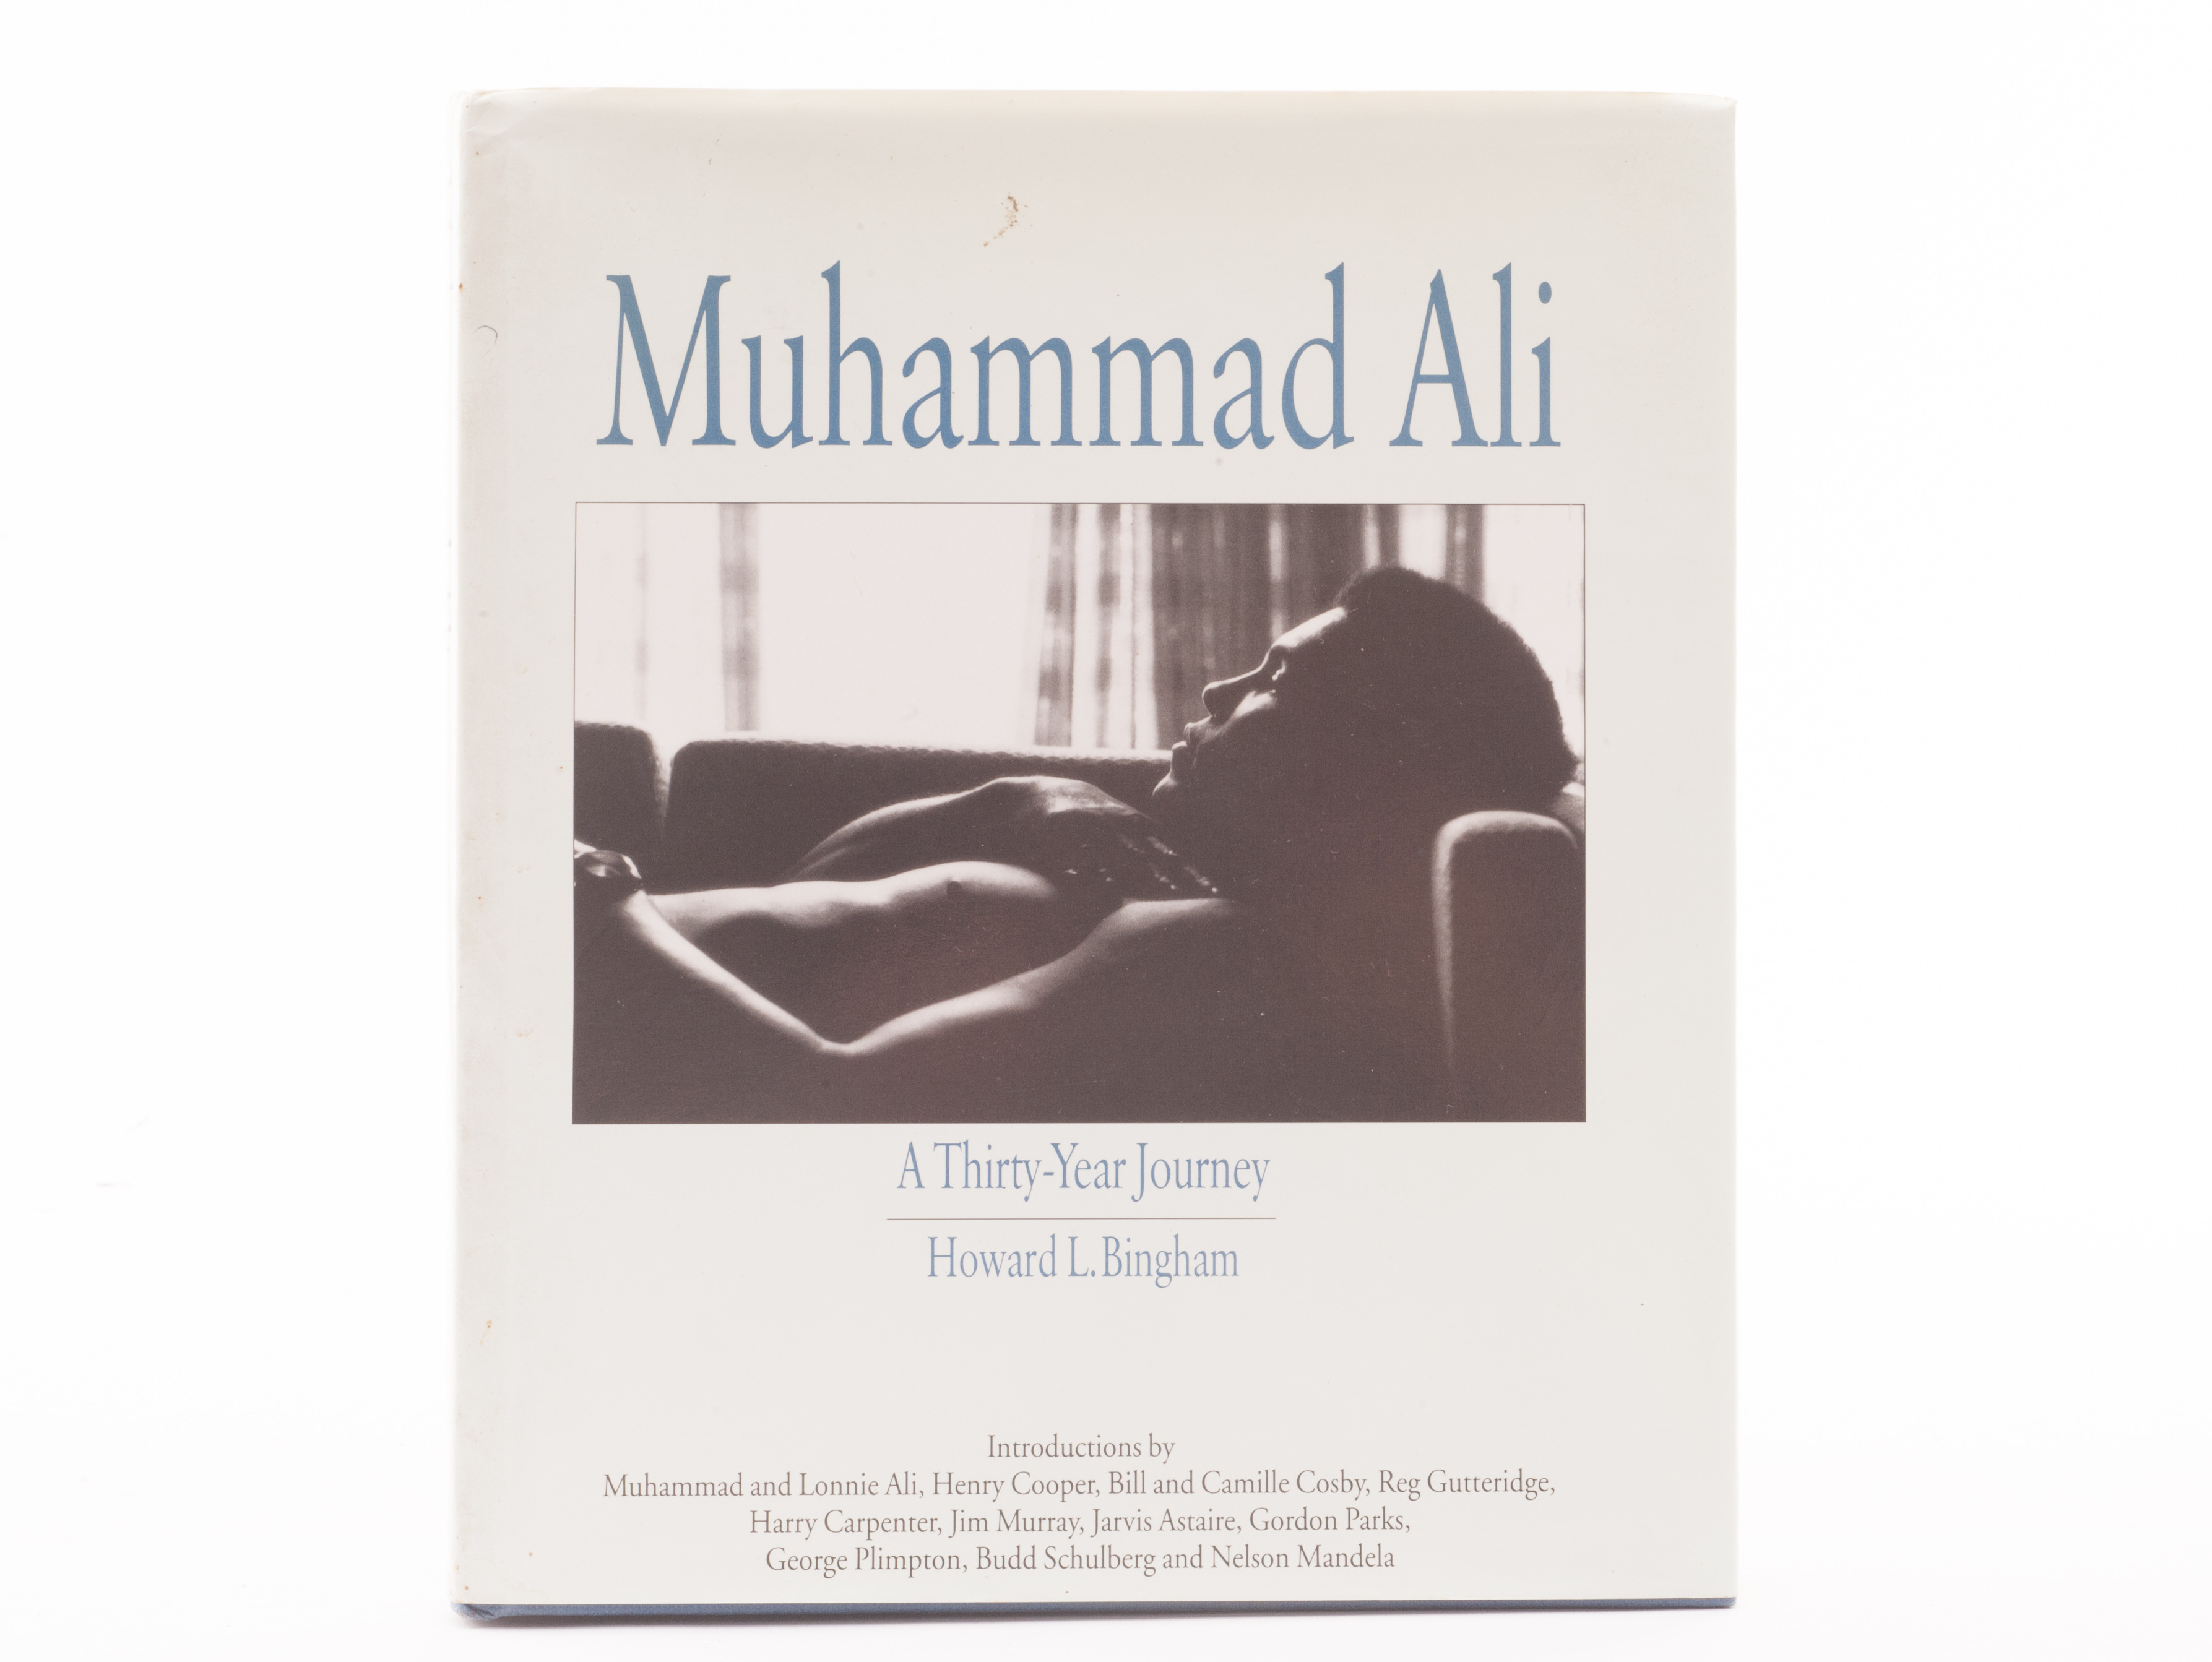 boxing autograph muhammad ali book `a year journey` by lot 517 boxing autograph muhammad ali book `a 30 year journey